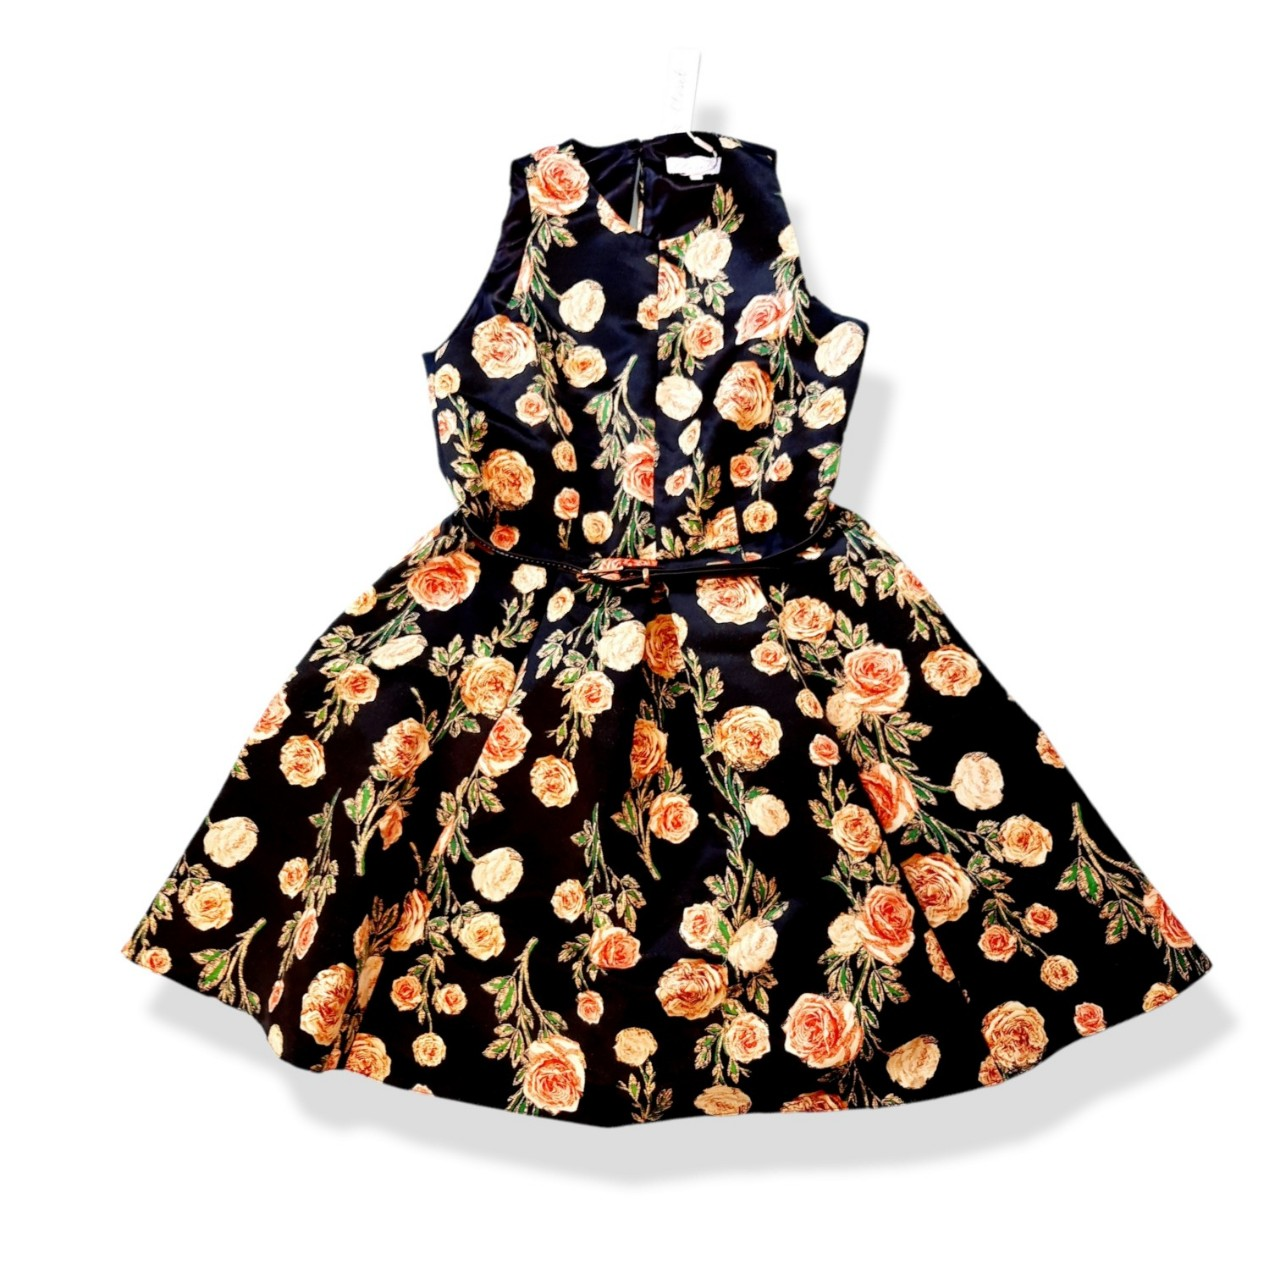 Product Image 1 - Closet floral fit and flare